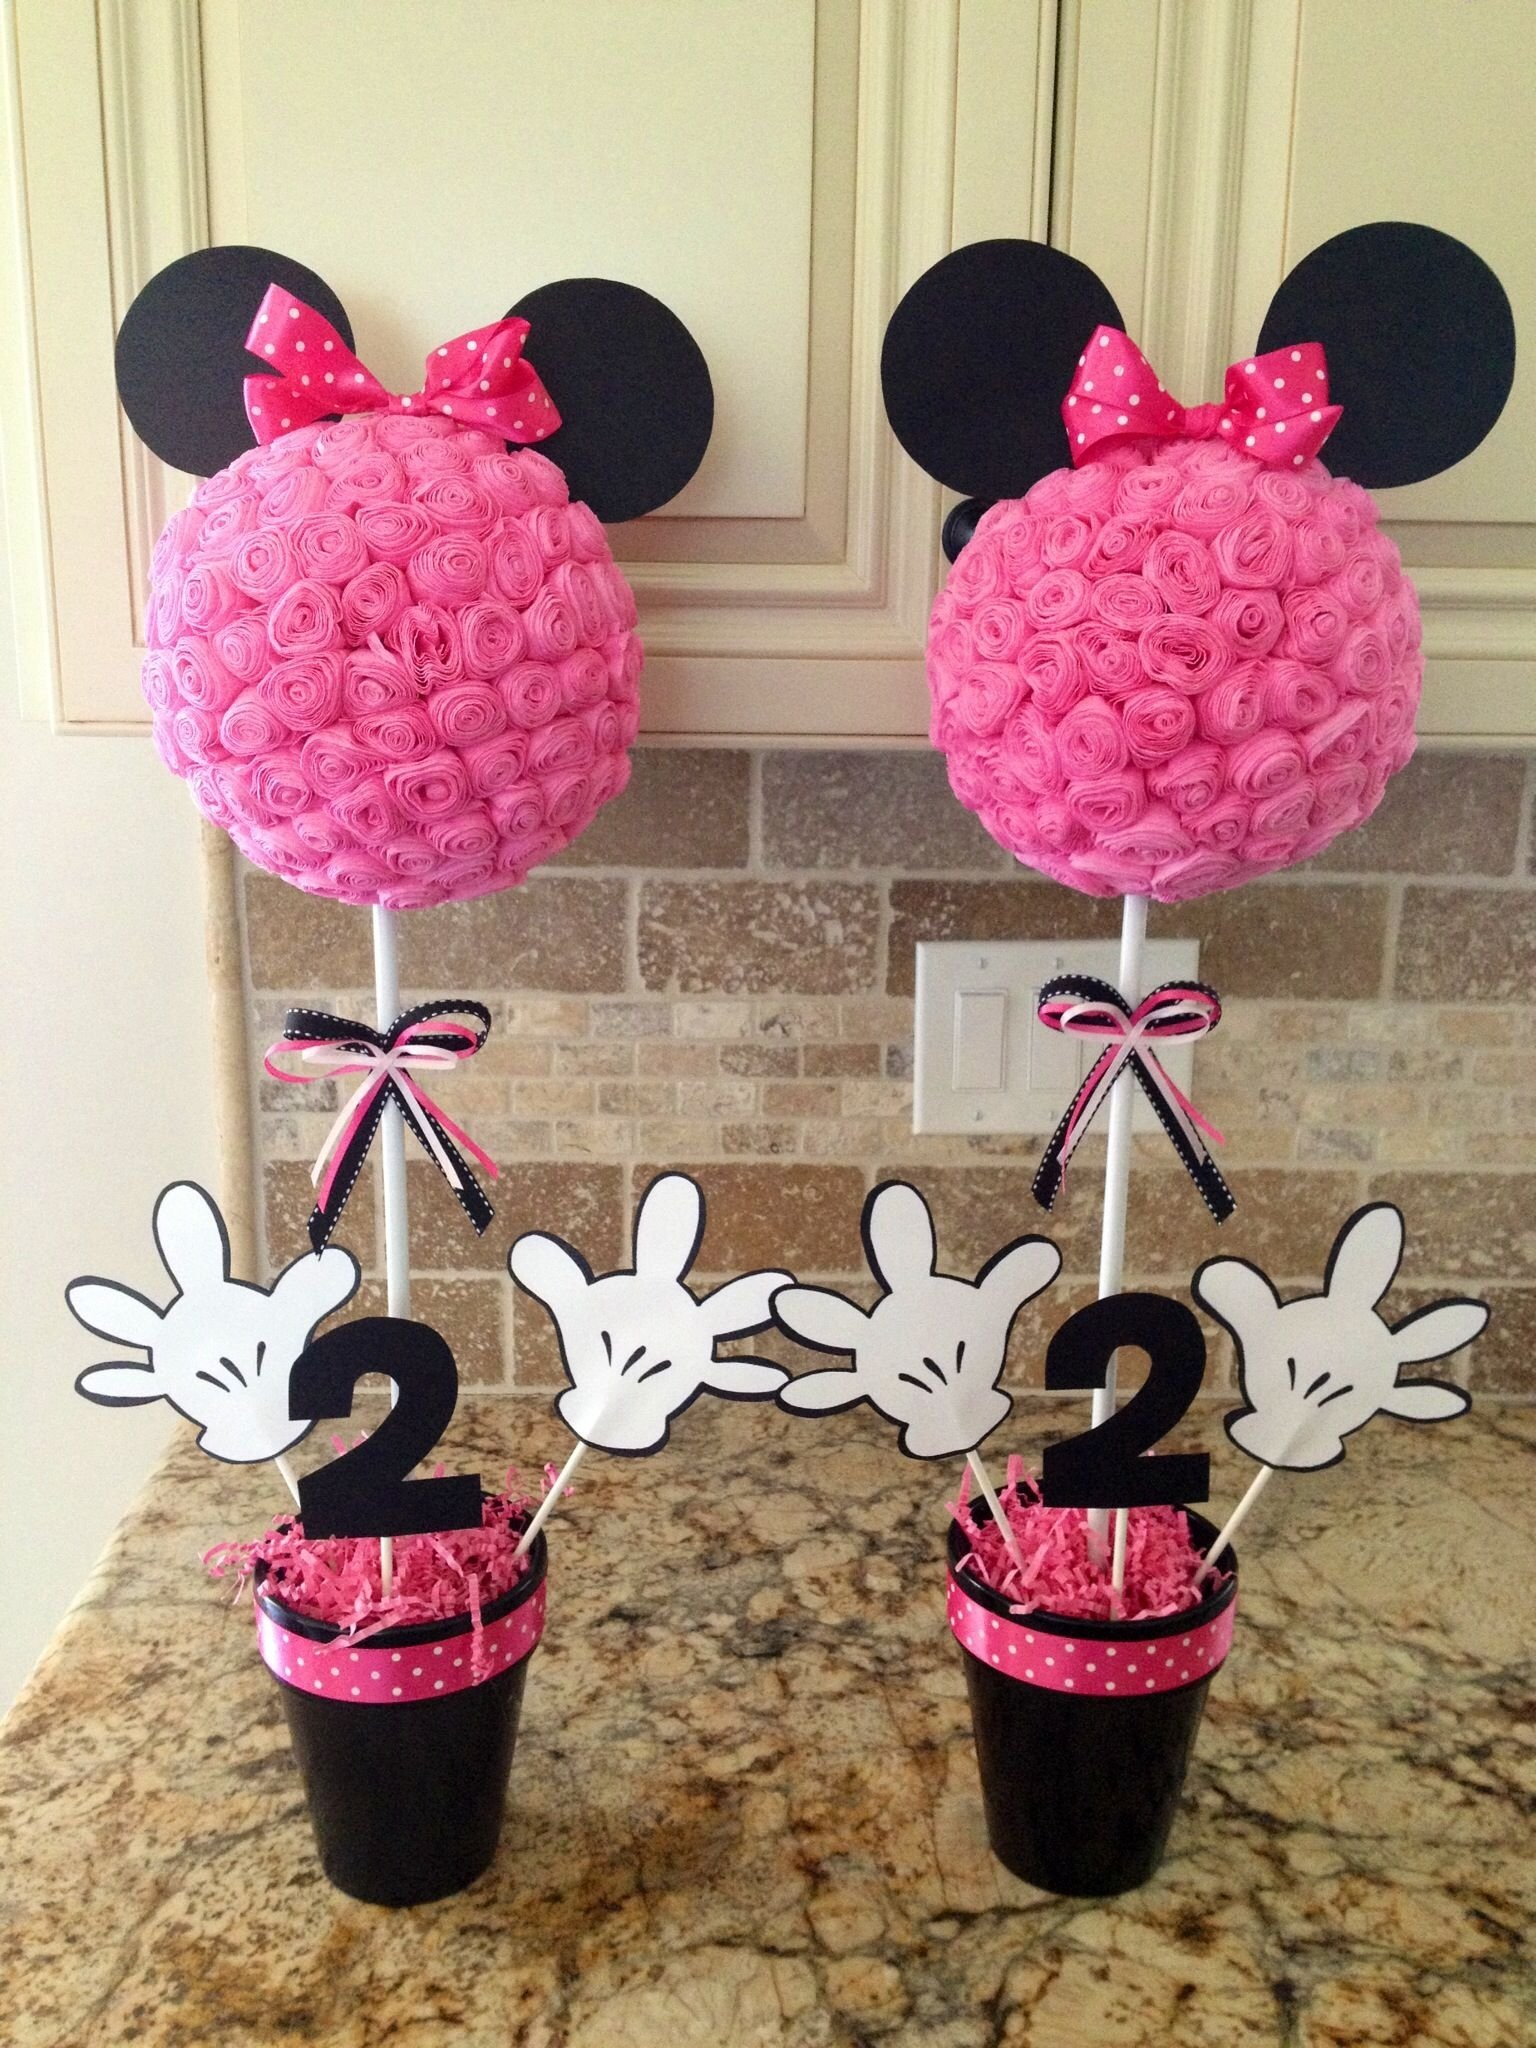 10 Trendy Minnie Mouse Table Decorations Ideas minnie mouse centerpieces minnie mouse pinterest minnie mouse 4 2020